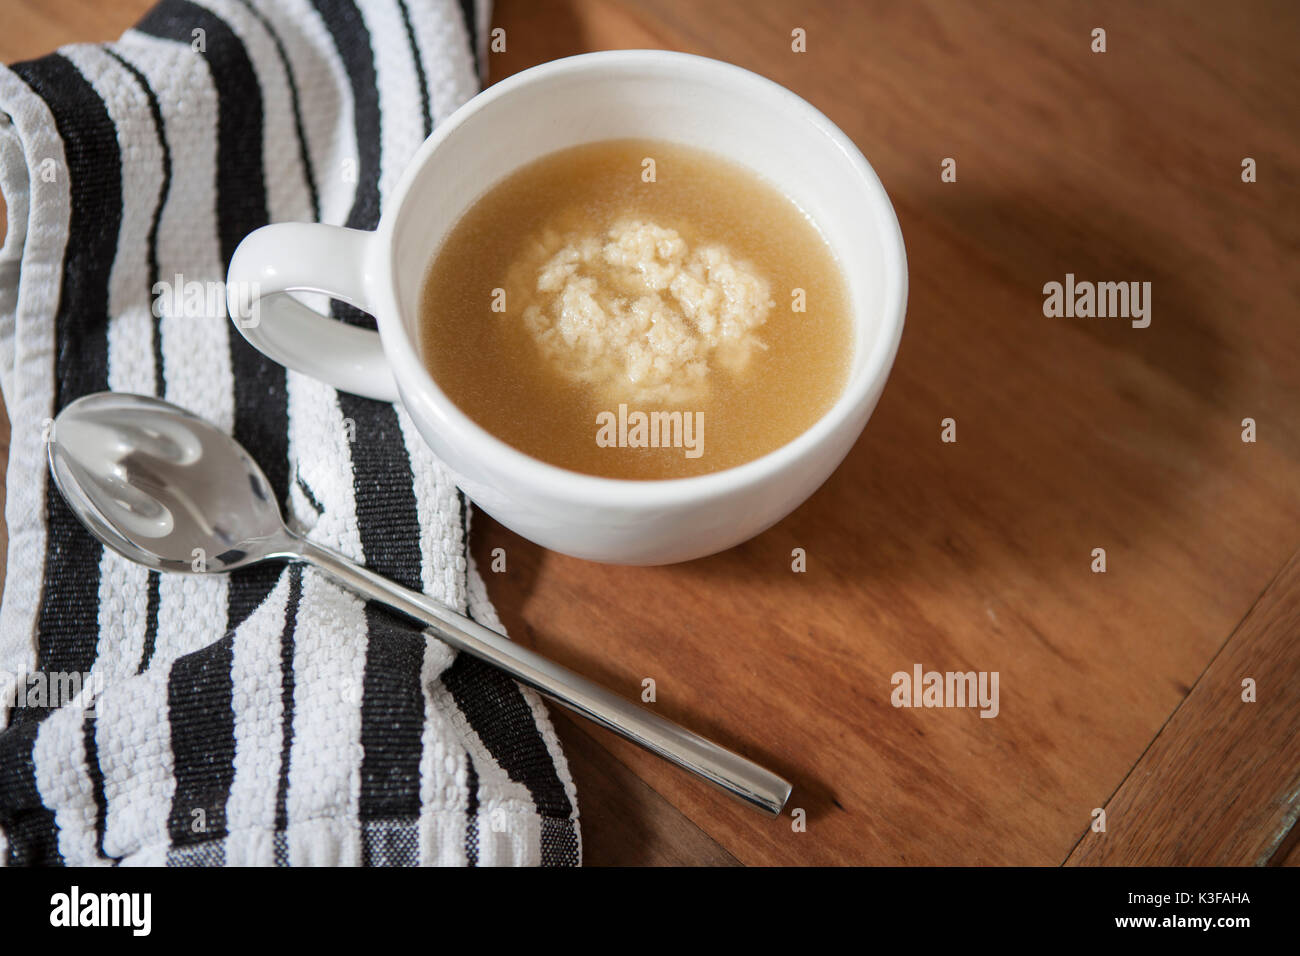 High Angle View of Cup of Matzah Ball Soup - Stock Image